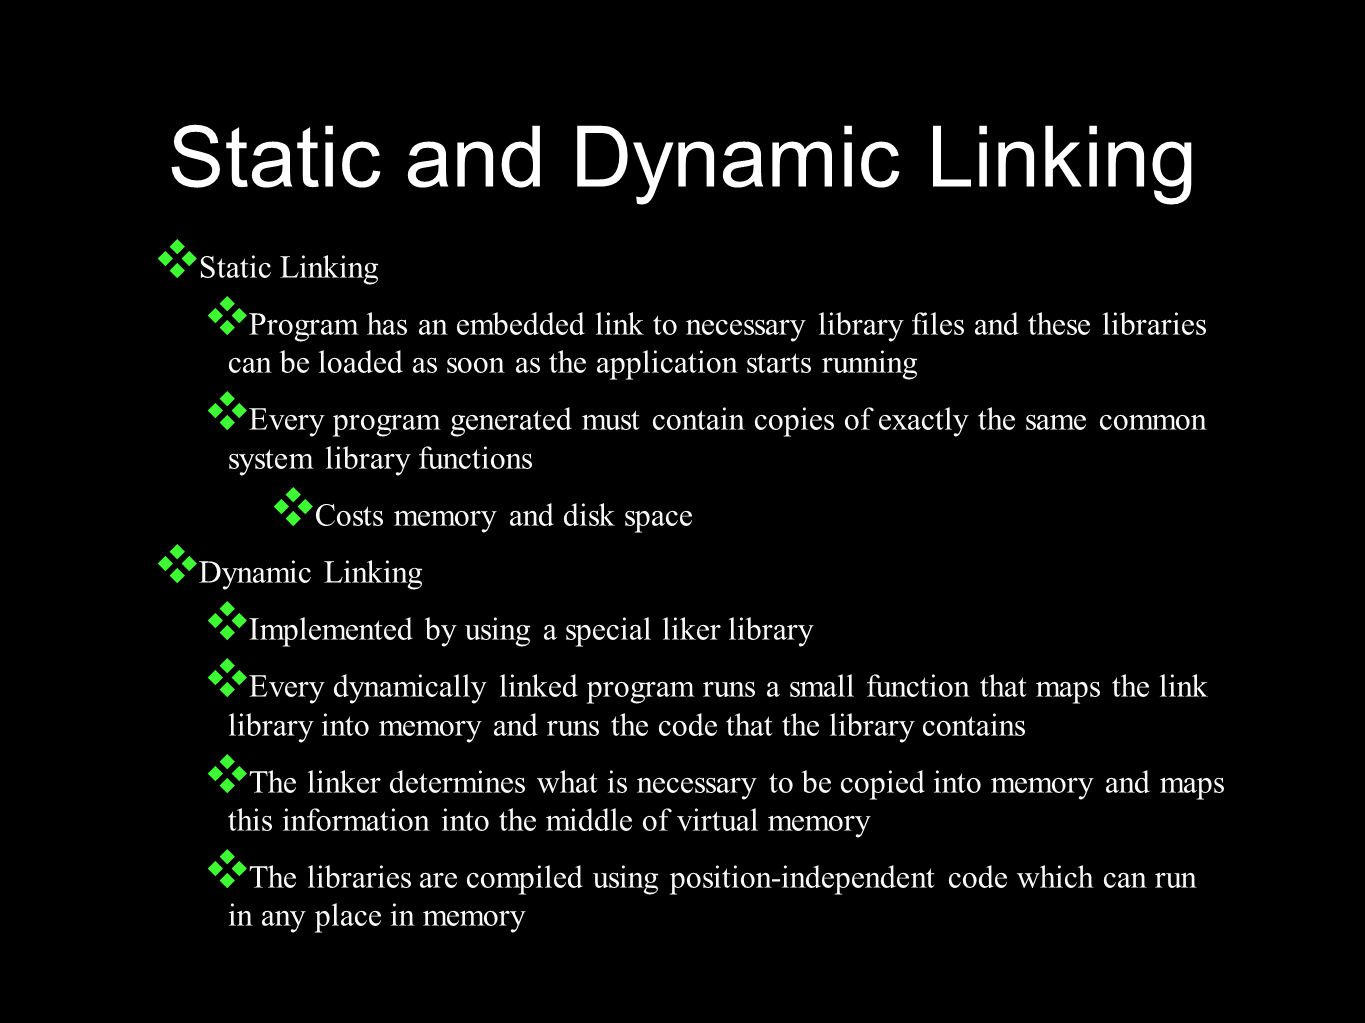 Static and Dynamic Linking ❖ Static Linking ❖ Program has an embedded link to necessary library files and these libraries can be loaded as soon as the application starts running ❖ Every program generated must contain copies of exactly the same common system library functions ❖ Costs memory and disk space ❖ Dynamic Linking ❖ Implemented by using a special liker library ❖ Every dynamically linked program runs a small function that maps the link library into memory and runs the code that the library contains ❖ The linker determines what is necessary to be copied into memory and maps this information into the middle of virtual memory ❖ The libraries are compiled using position-independent code which can run in any place in memory